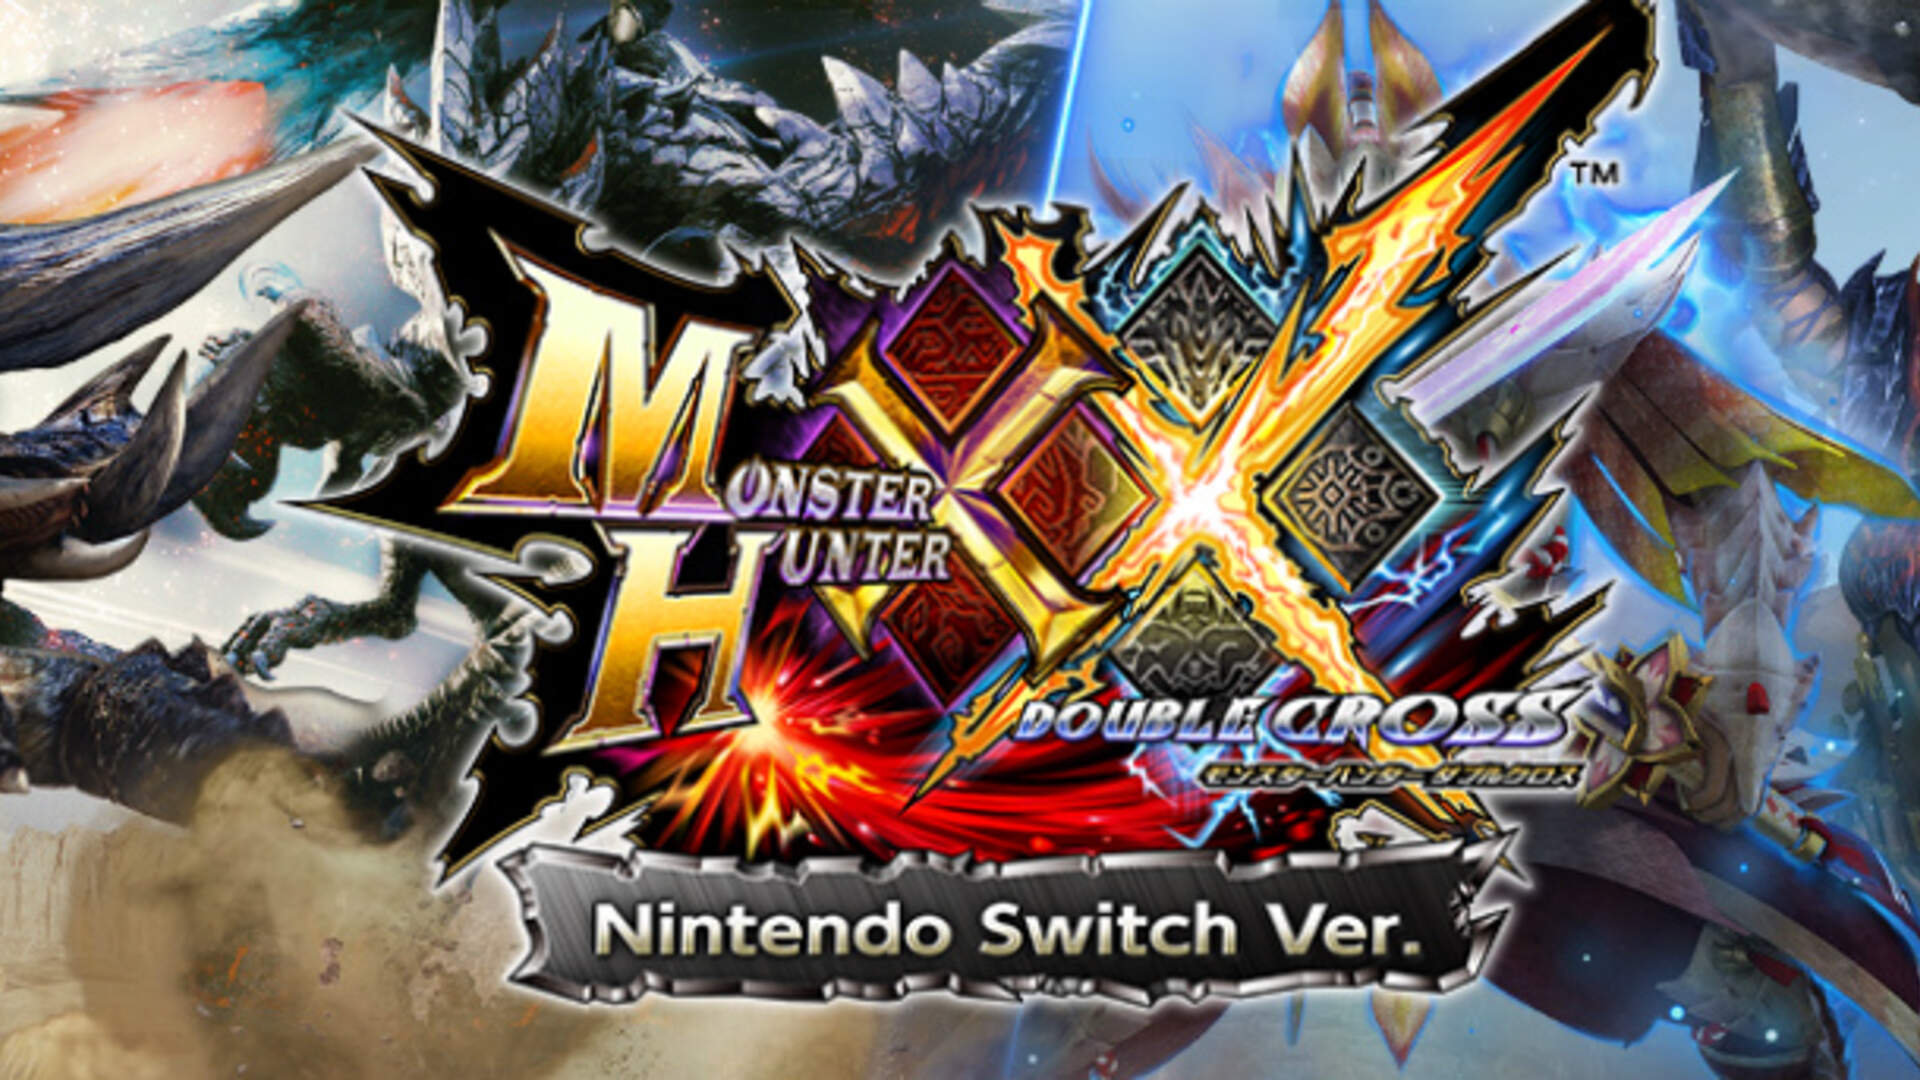 Monster Hunter XX Switch Coming In August, 3DS Save Transfers and Cross-Play Confirmed